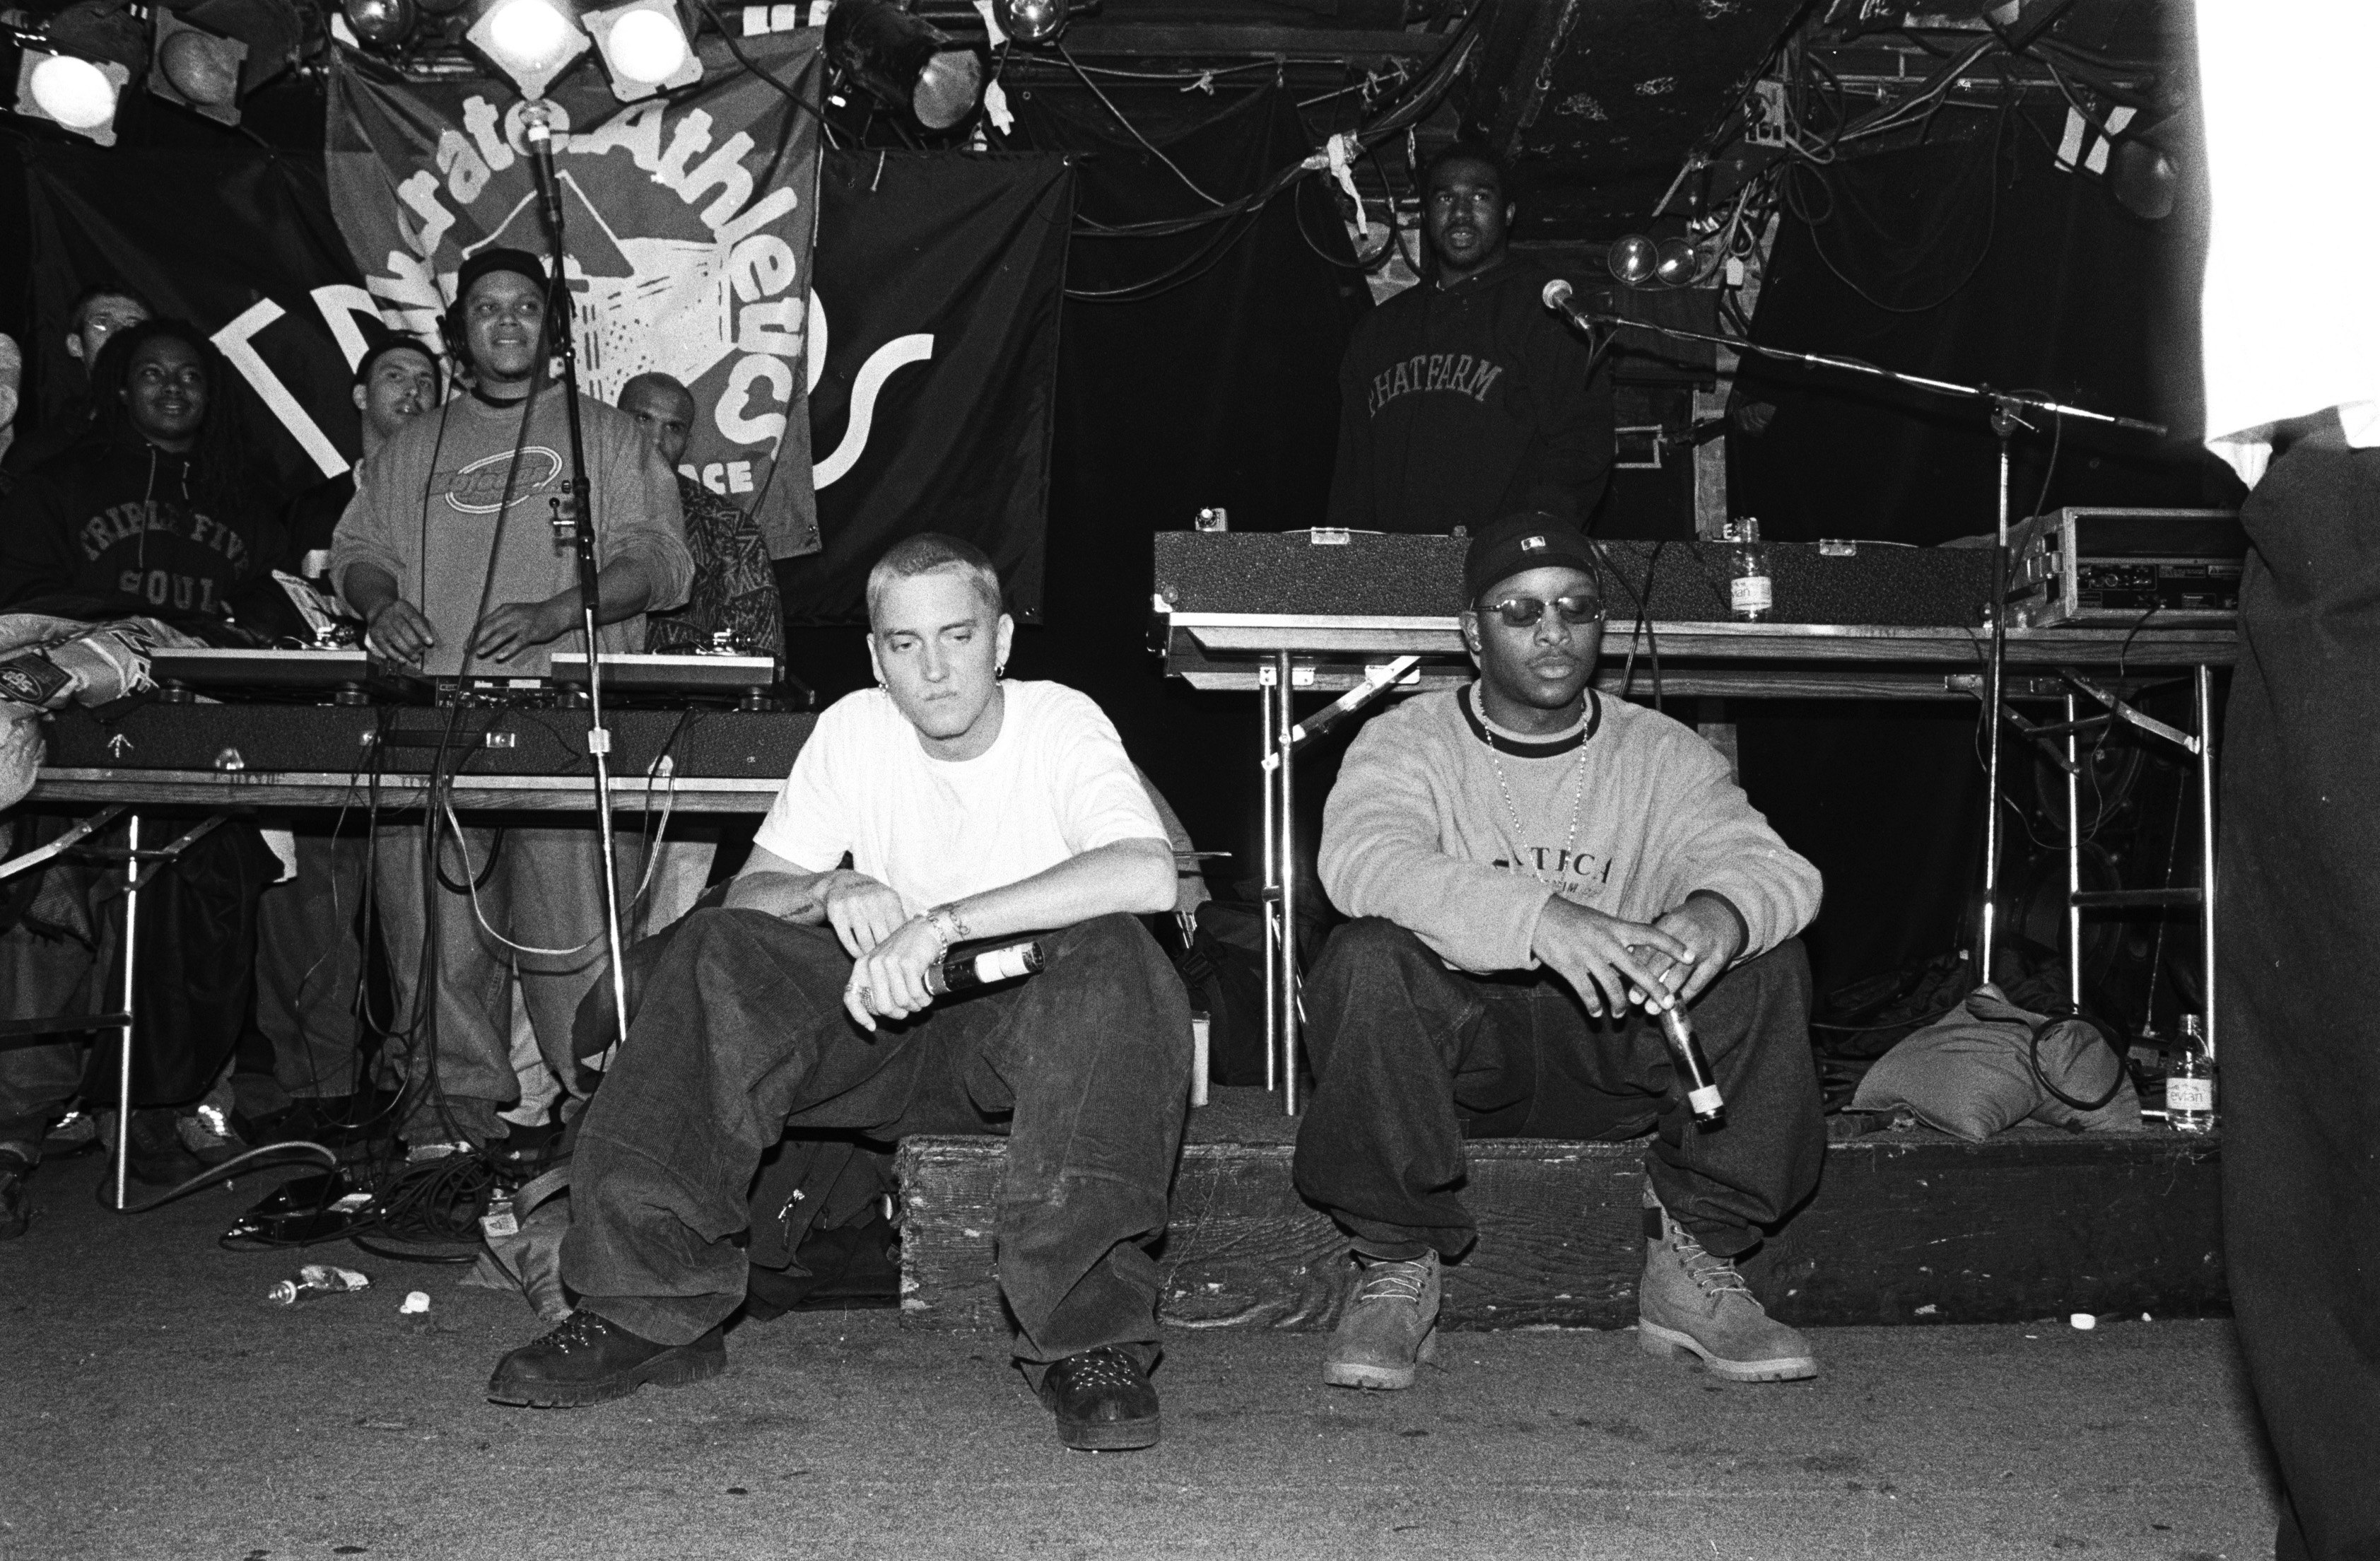 NEW YORK - MARCH 1999: Rappers Eminem, left, and Royce Da 5'9